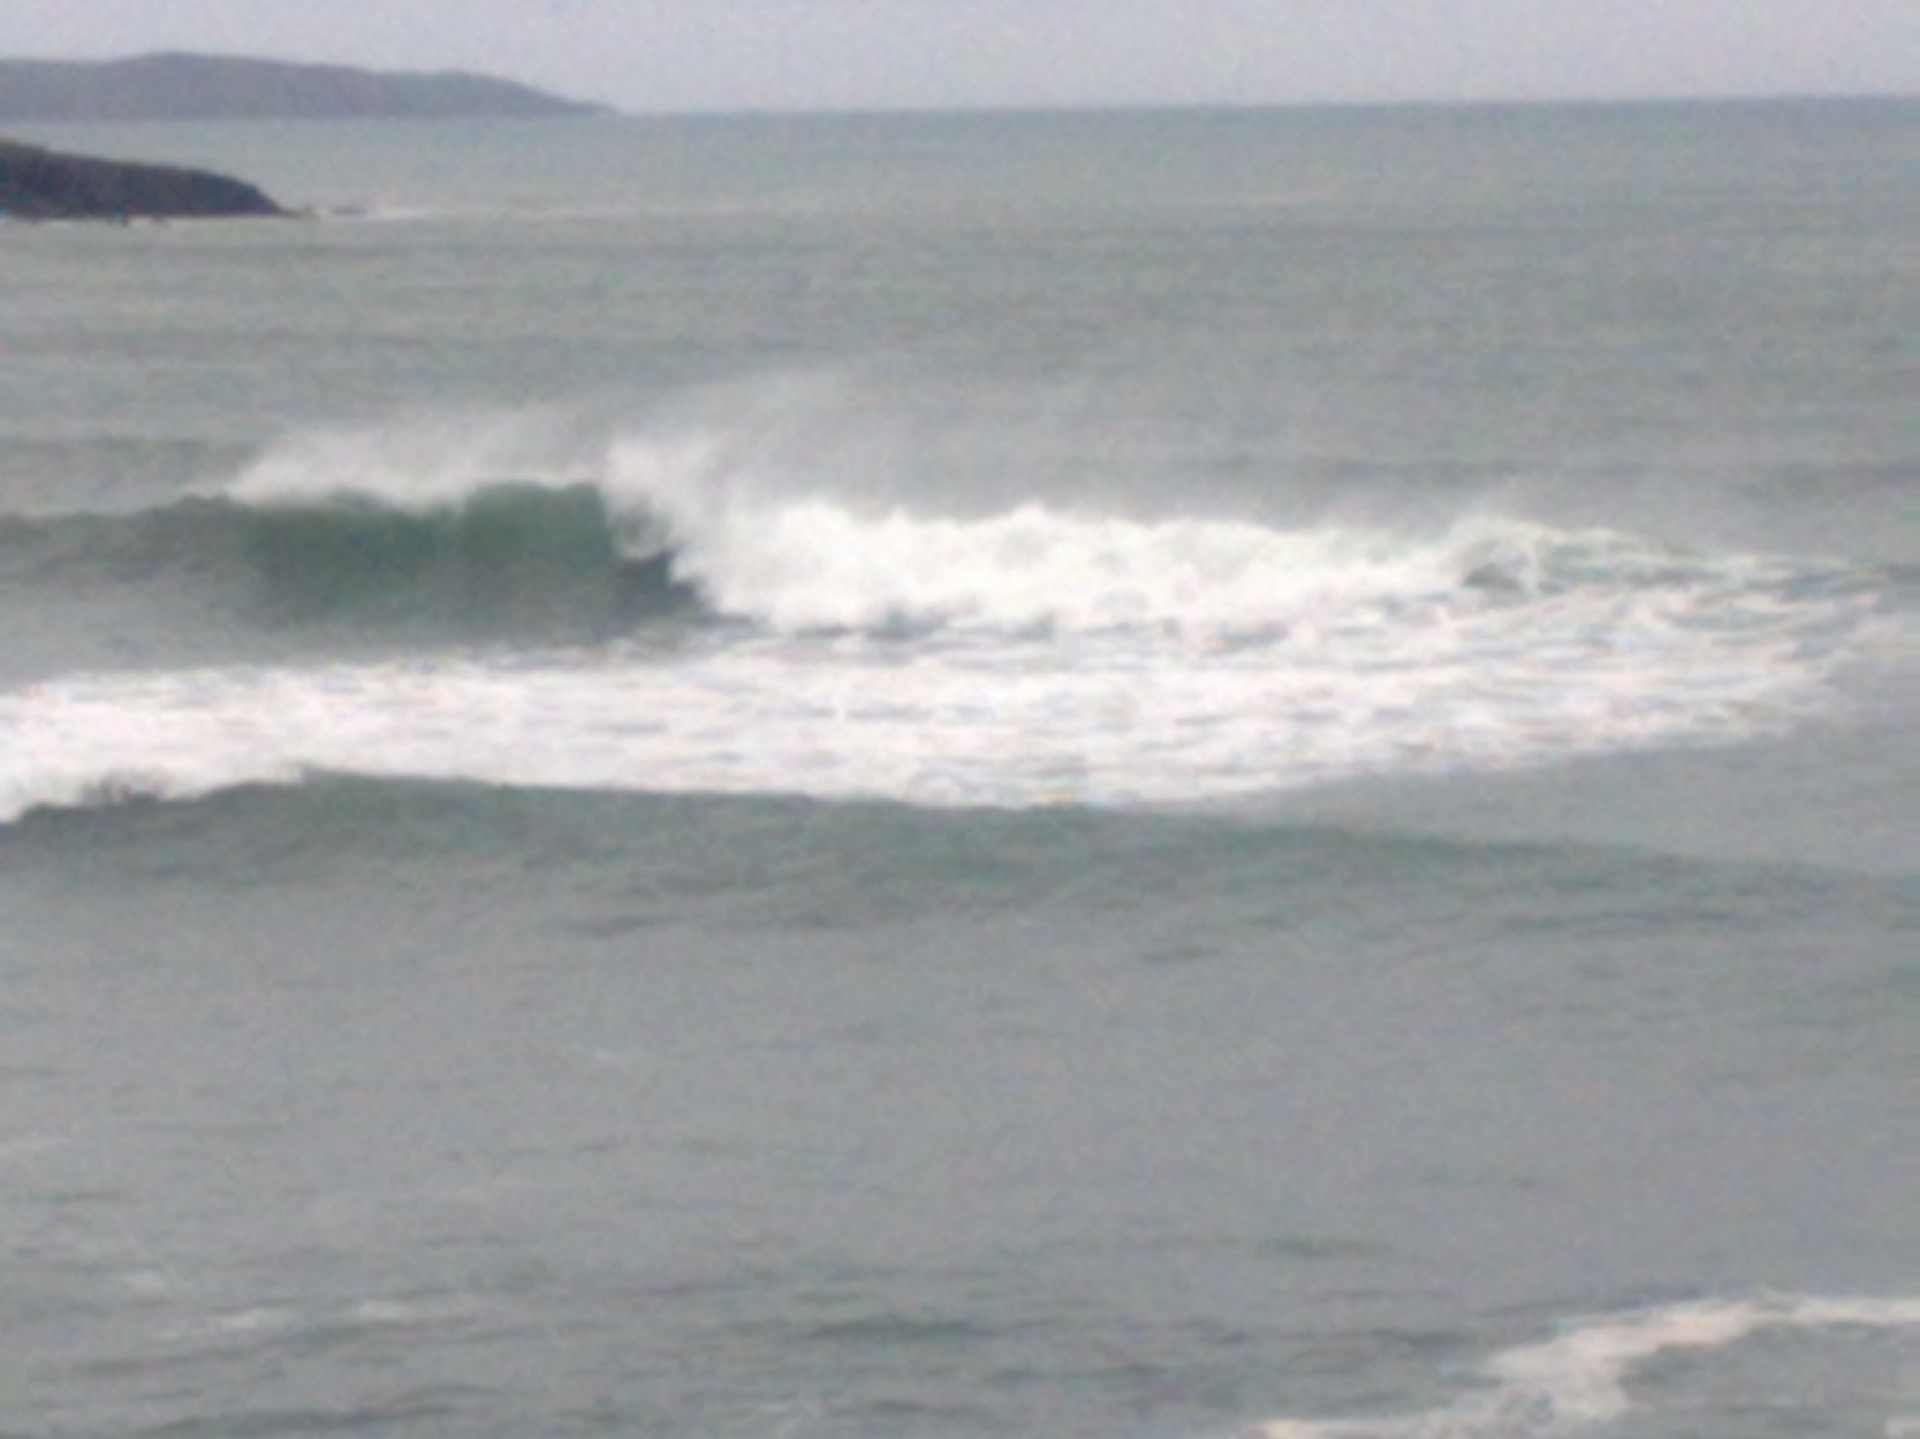 I-love-pumpin-and-dumpin's photo of Ponta do Ouro